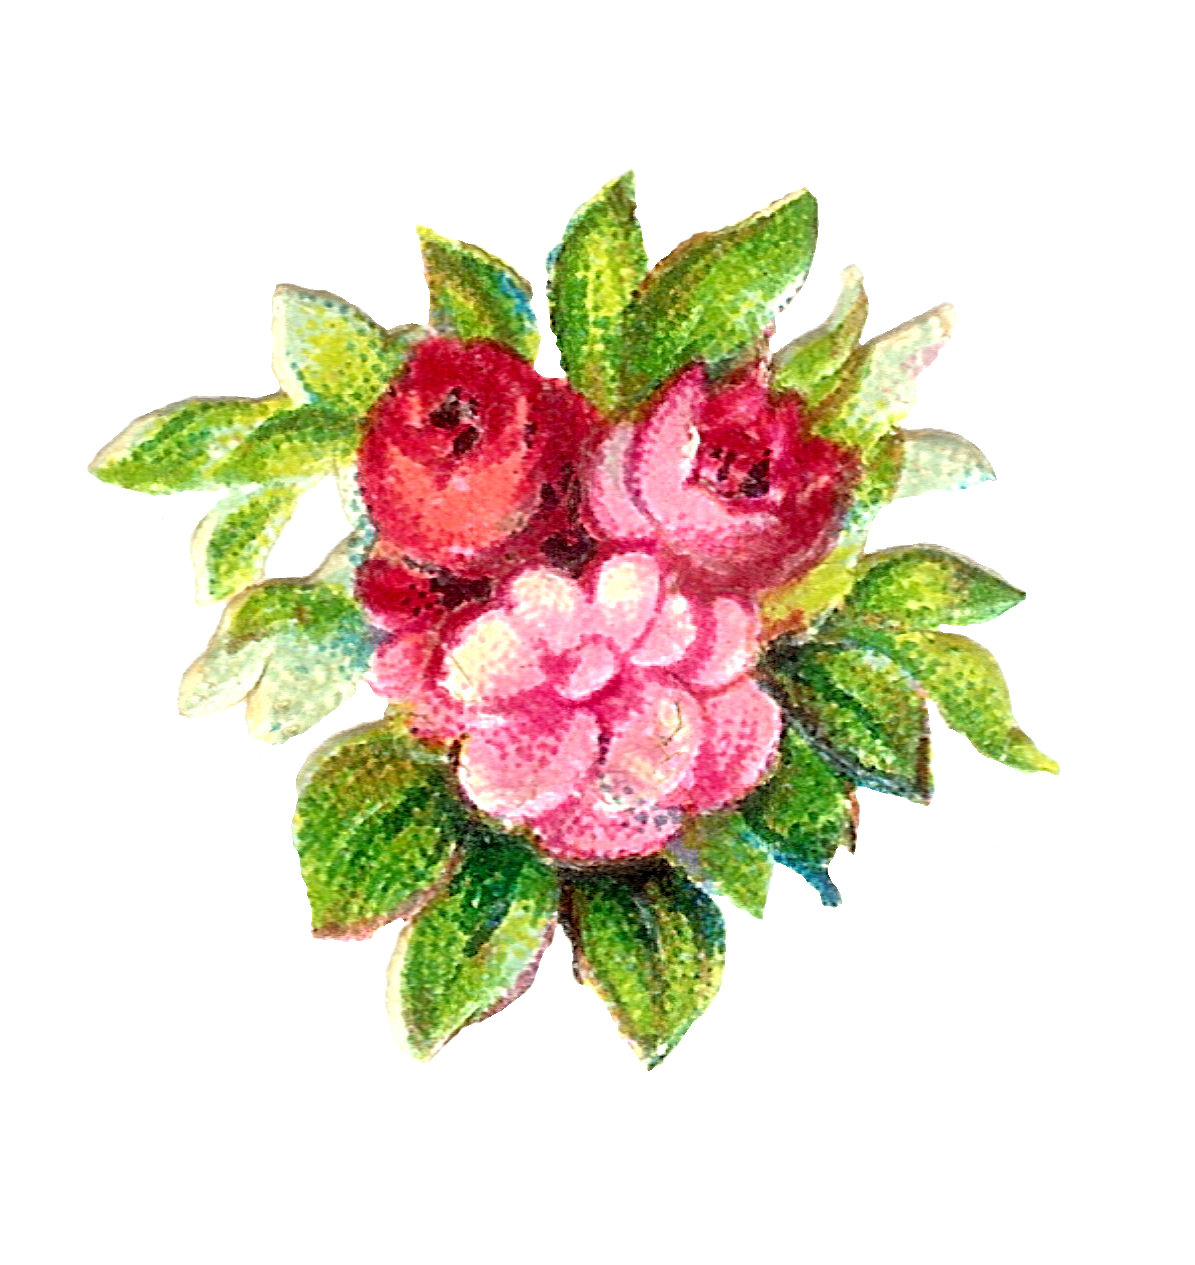 Digital flower clipart picture library stock Judy Scott (jes19420572) on Pinterest picture library stock